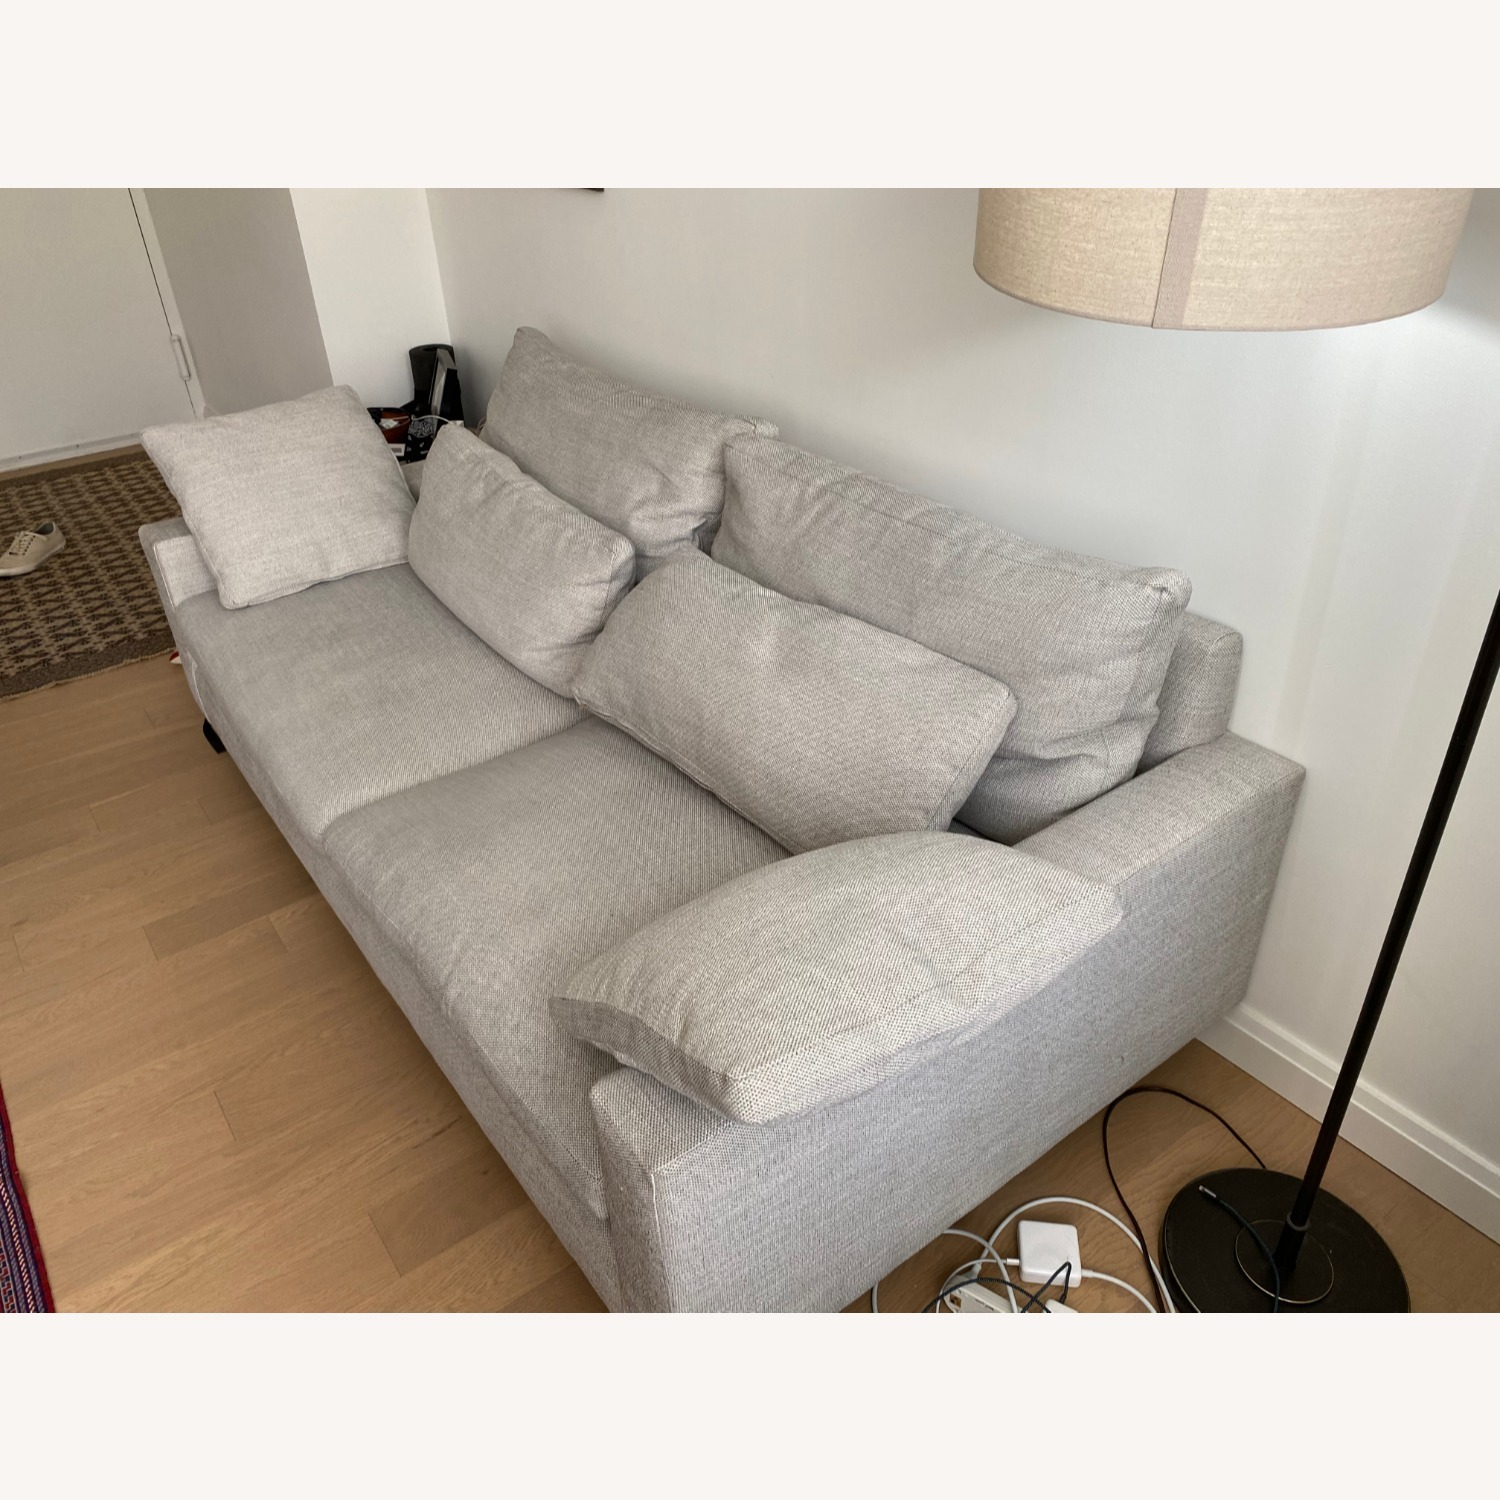 West Elm 2 Seat Couch - image-2